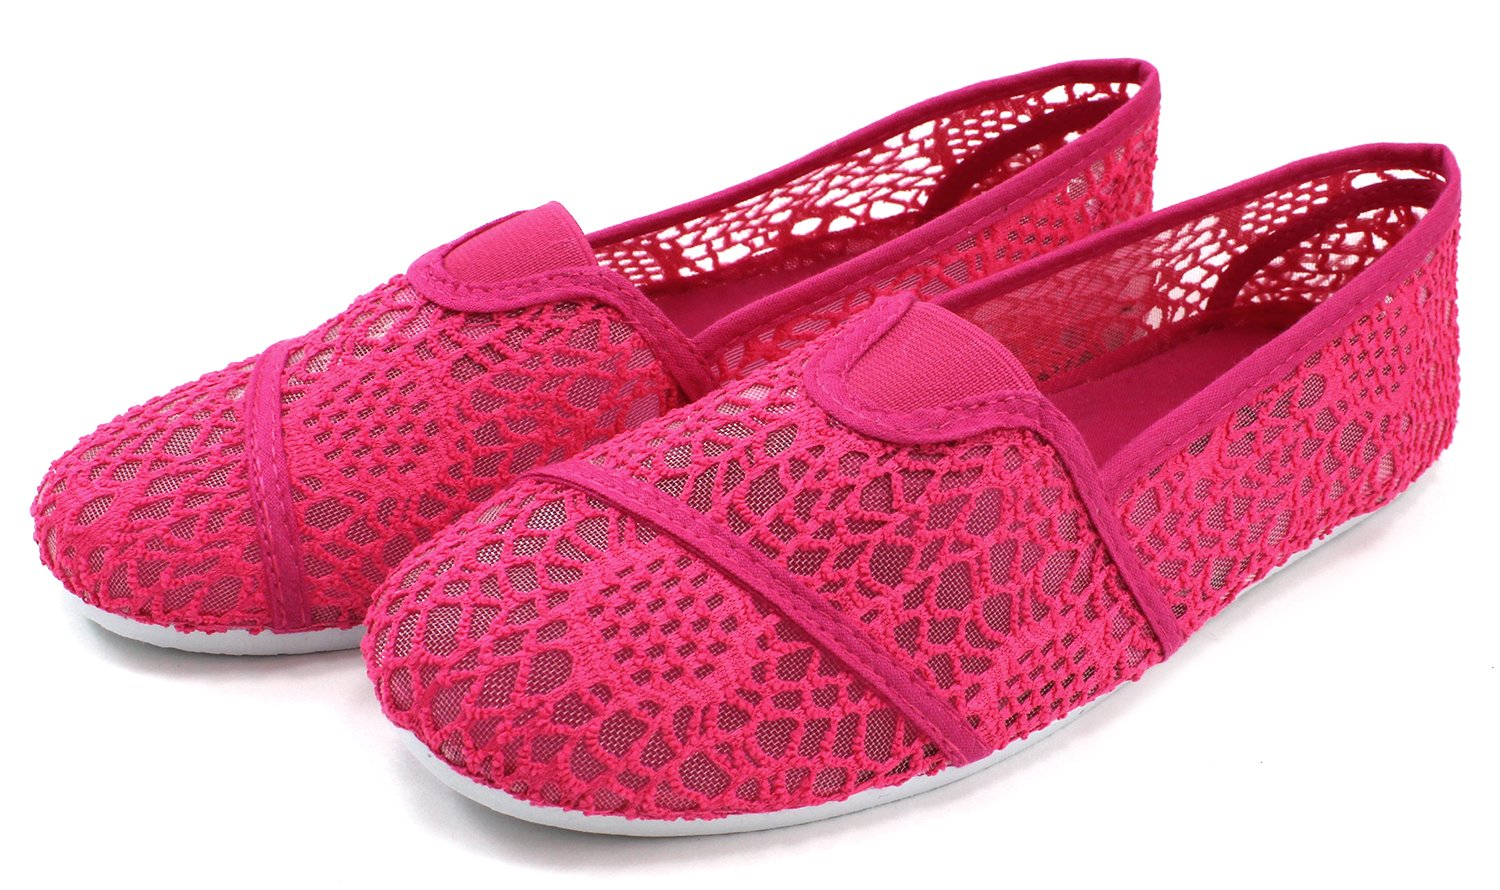 Cammie Women's Canvas Slip On Fashion Shoe Flats Espadrilles B00UCN6POK 9 B(M) US|Mesh Fuchsia